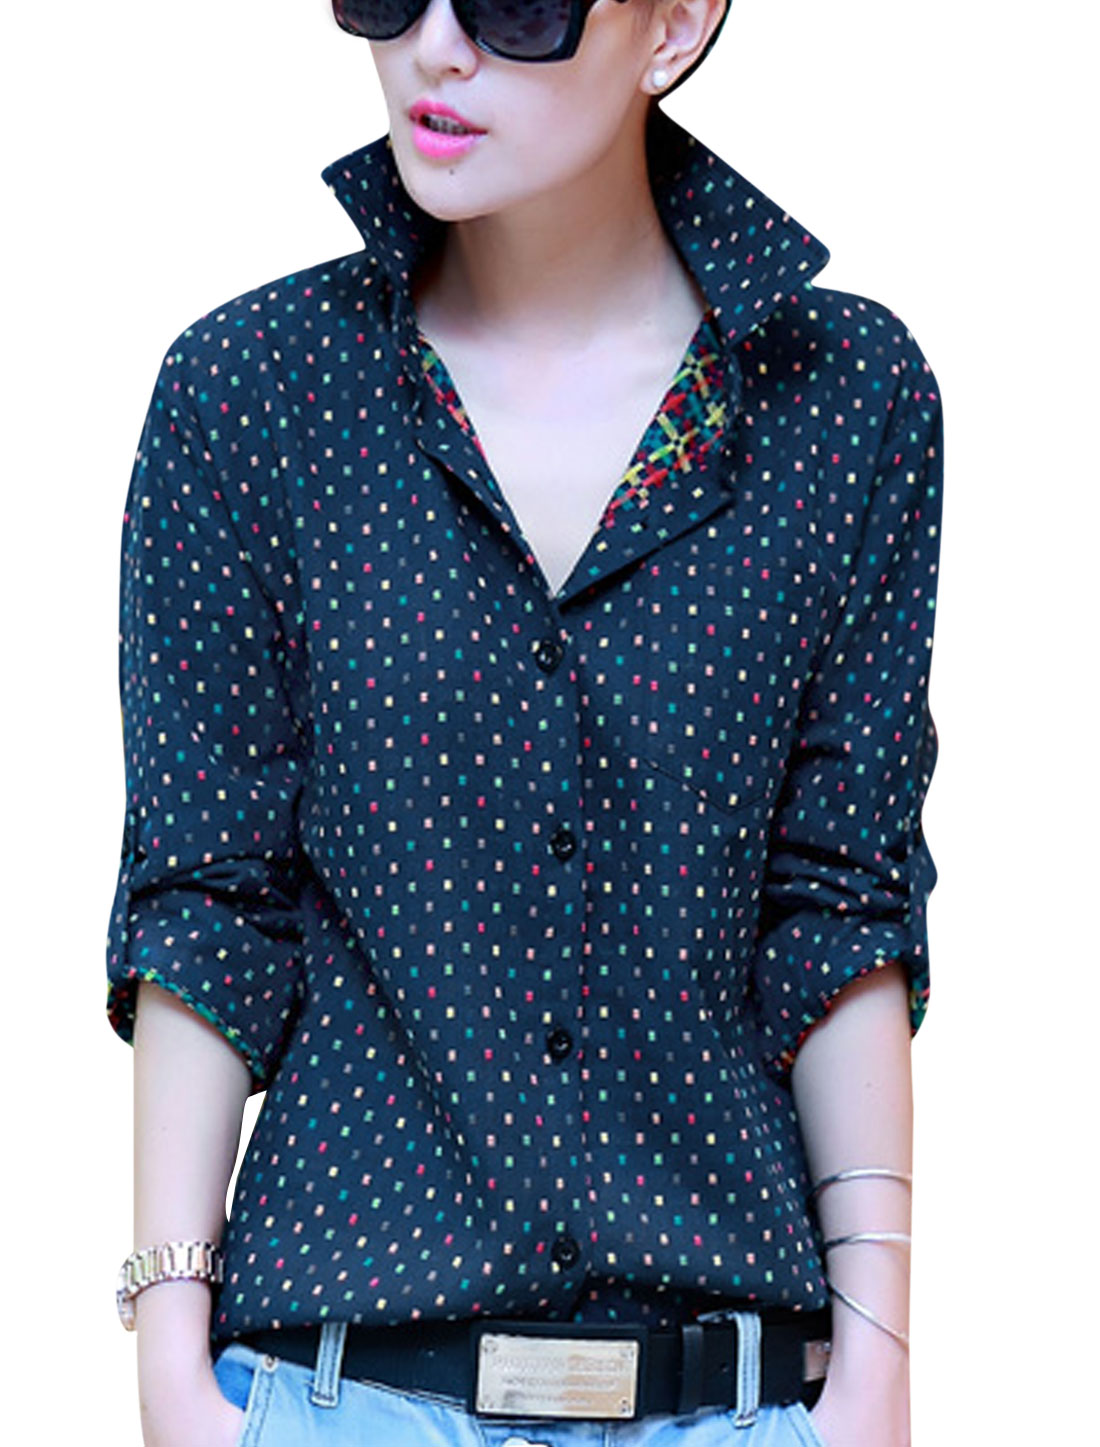 Lady Single Breasted Embroidery Plaids Design Leisure Shirt Navy Blue S